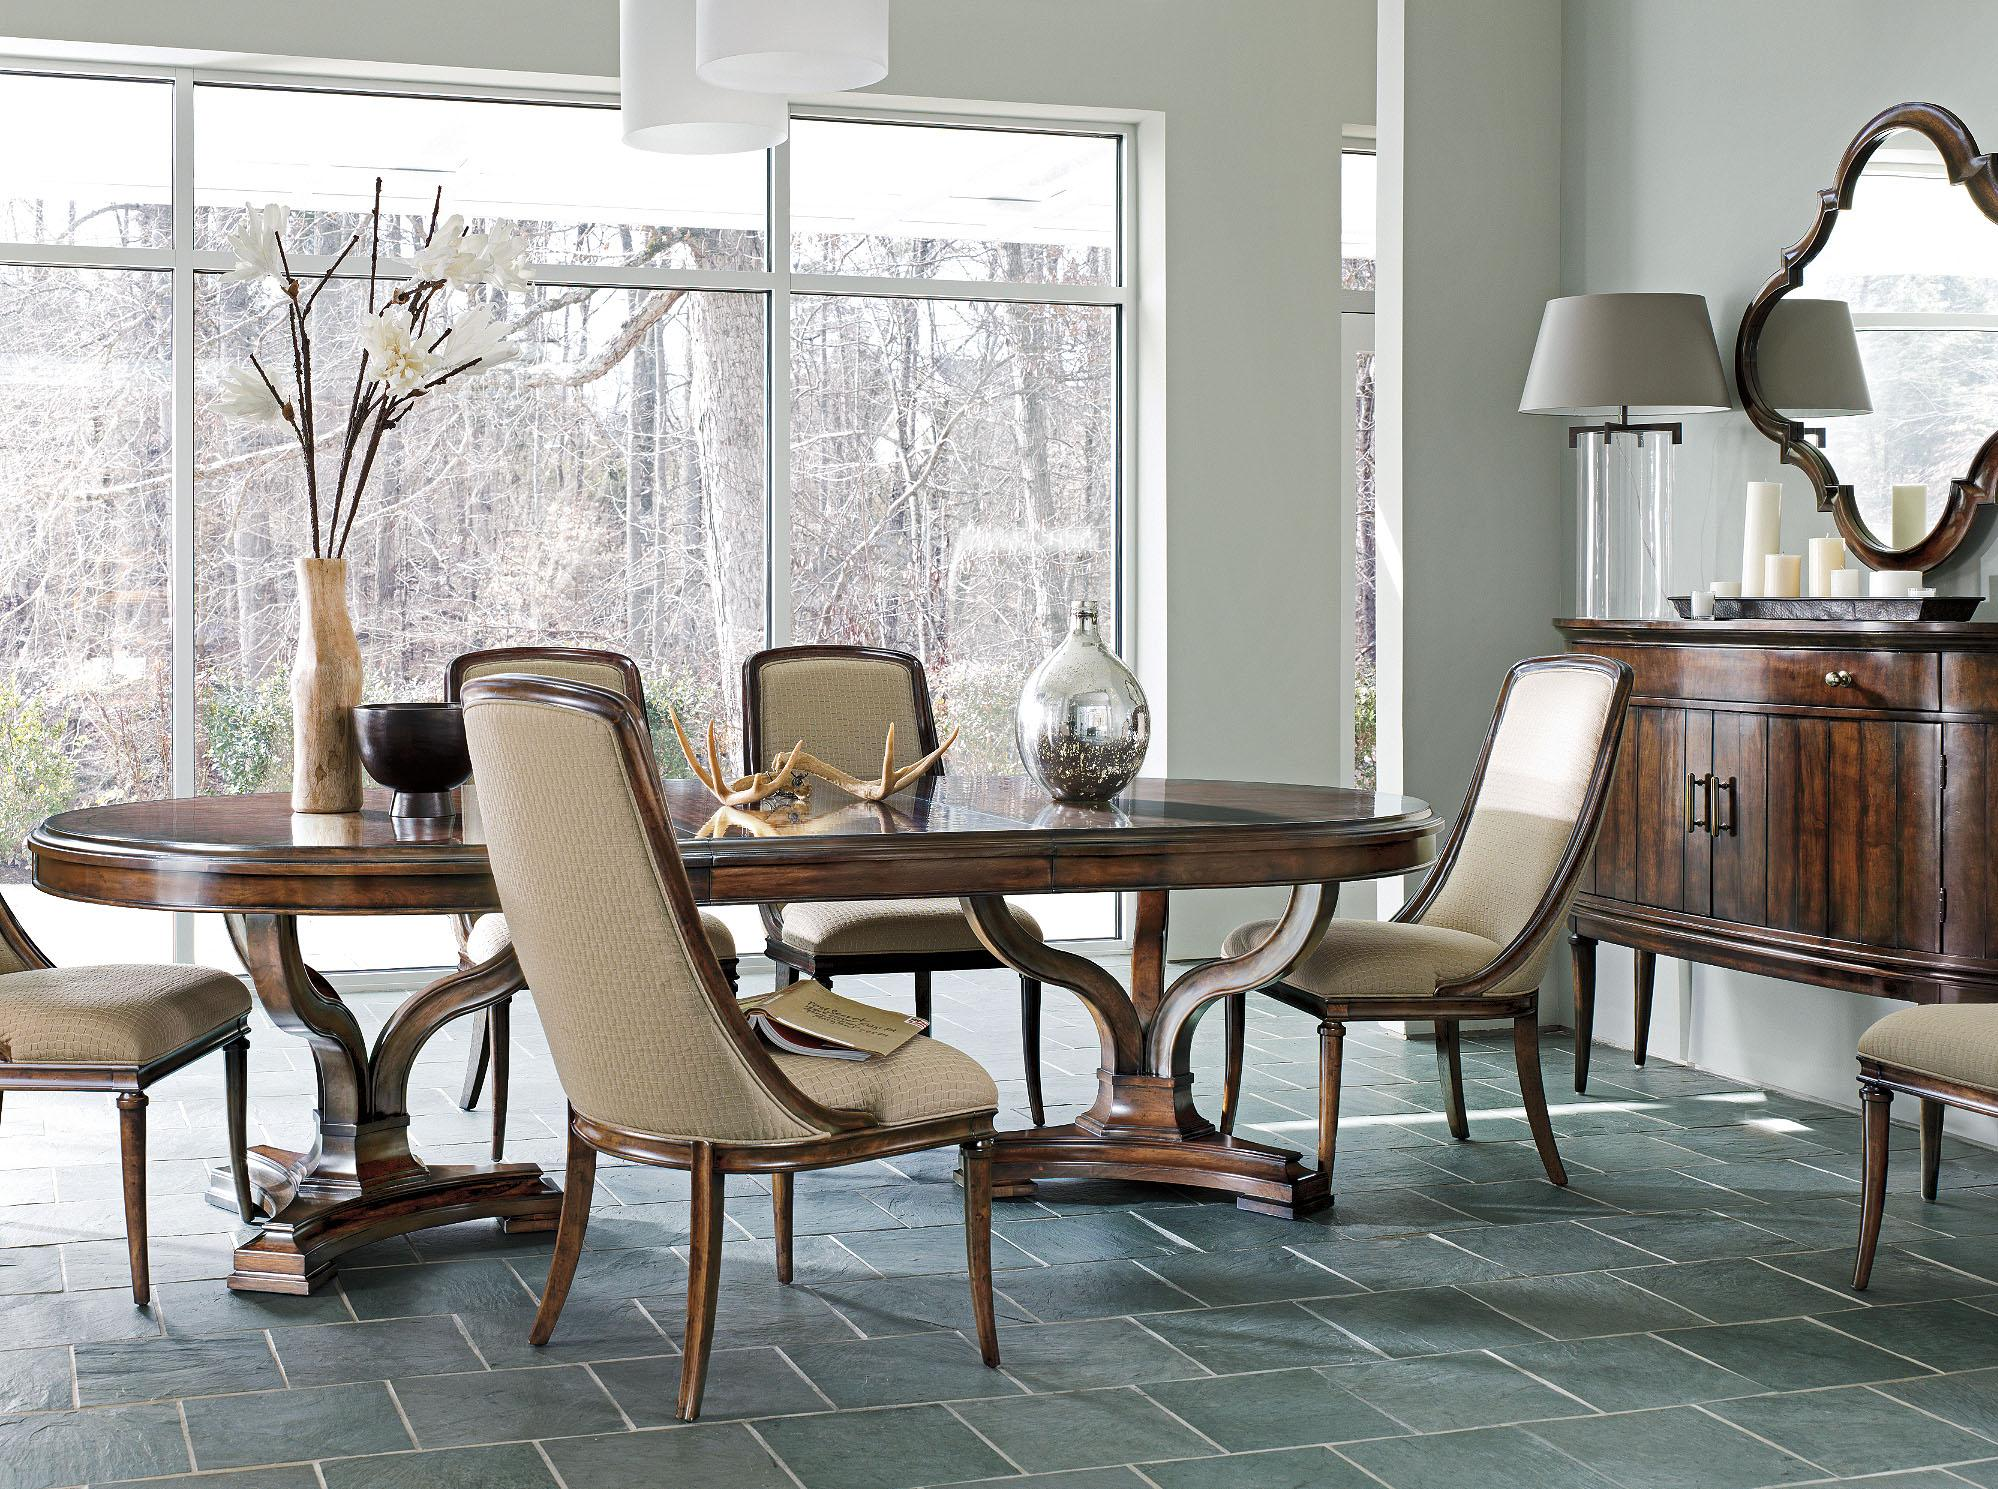 Stanley Furniture Avalon Heights Casual Dining Room Group - Item Number: 193 Dining Room Group 1